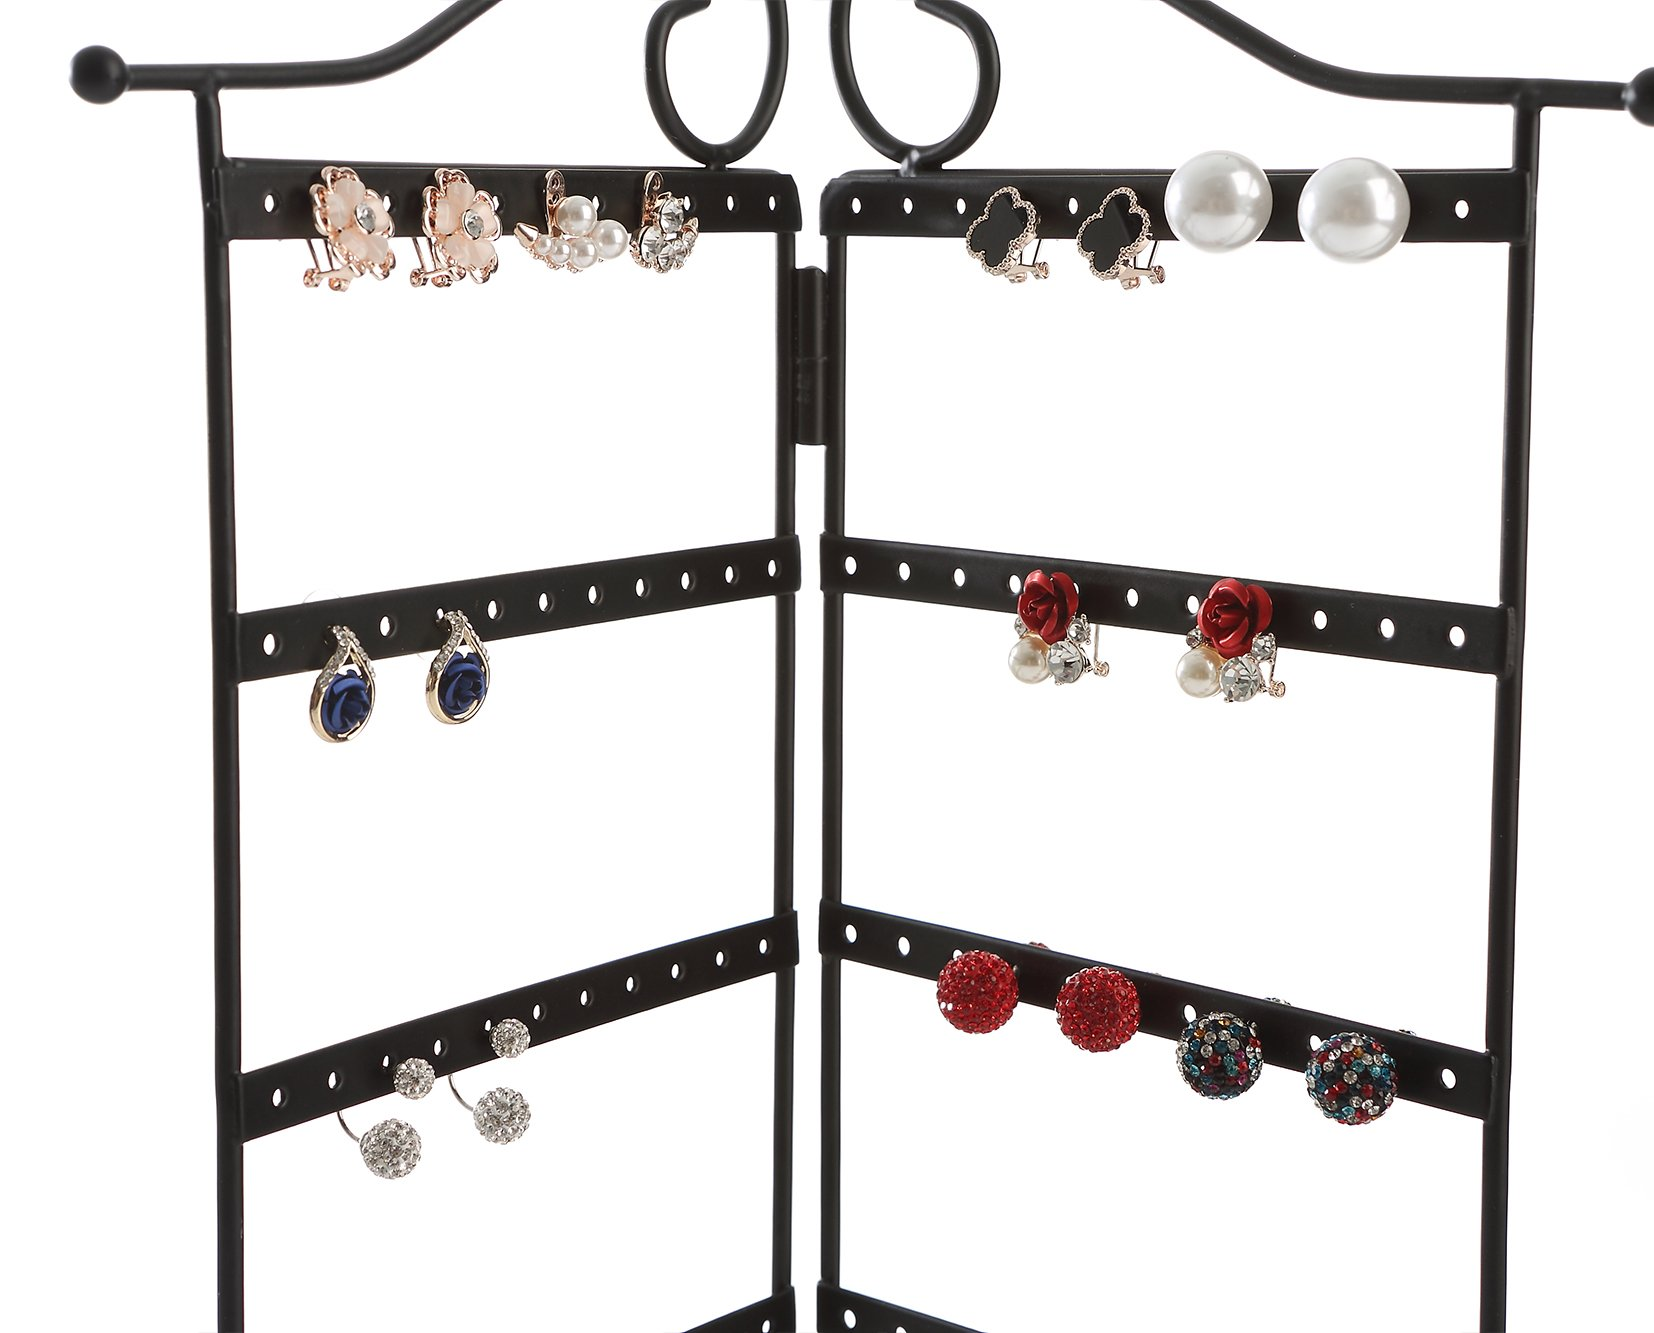 Giftway 3-Panel Organizer for Hanging Earrings, Bracelets and Necklaces, Black